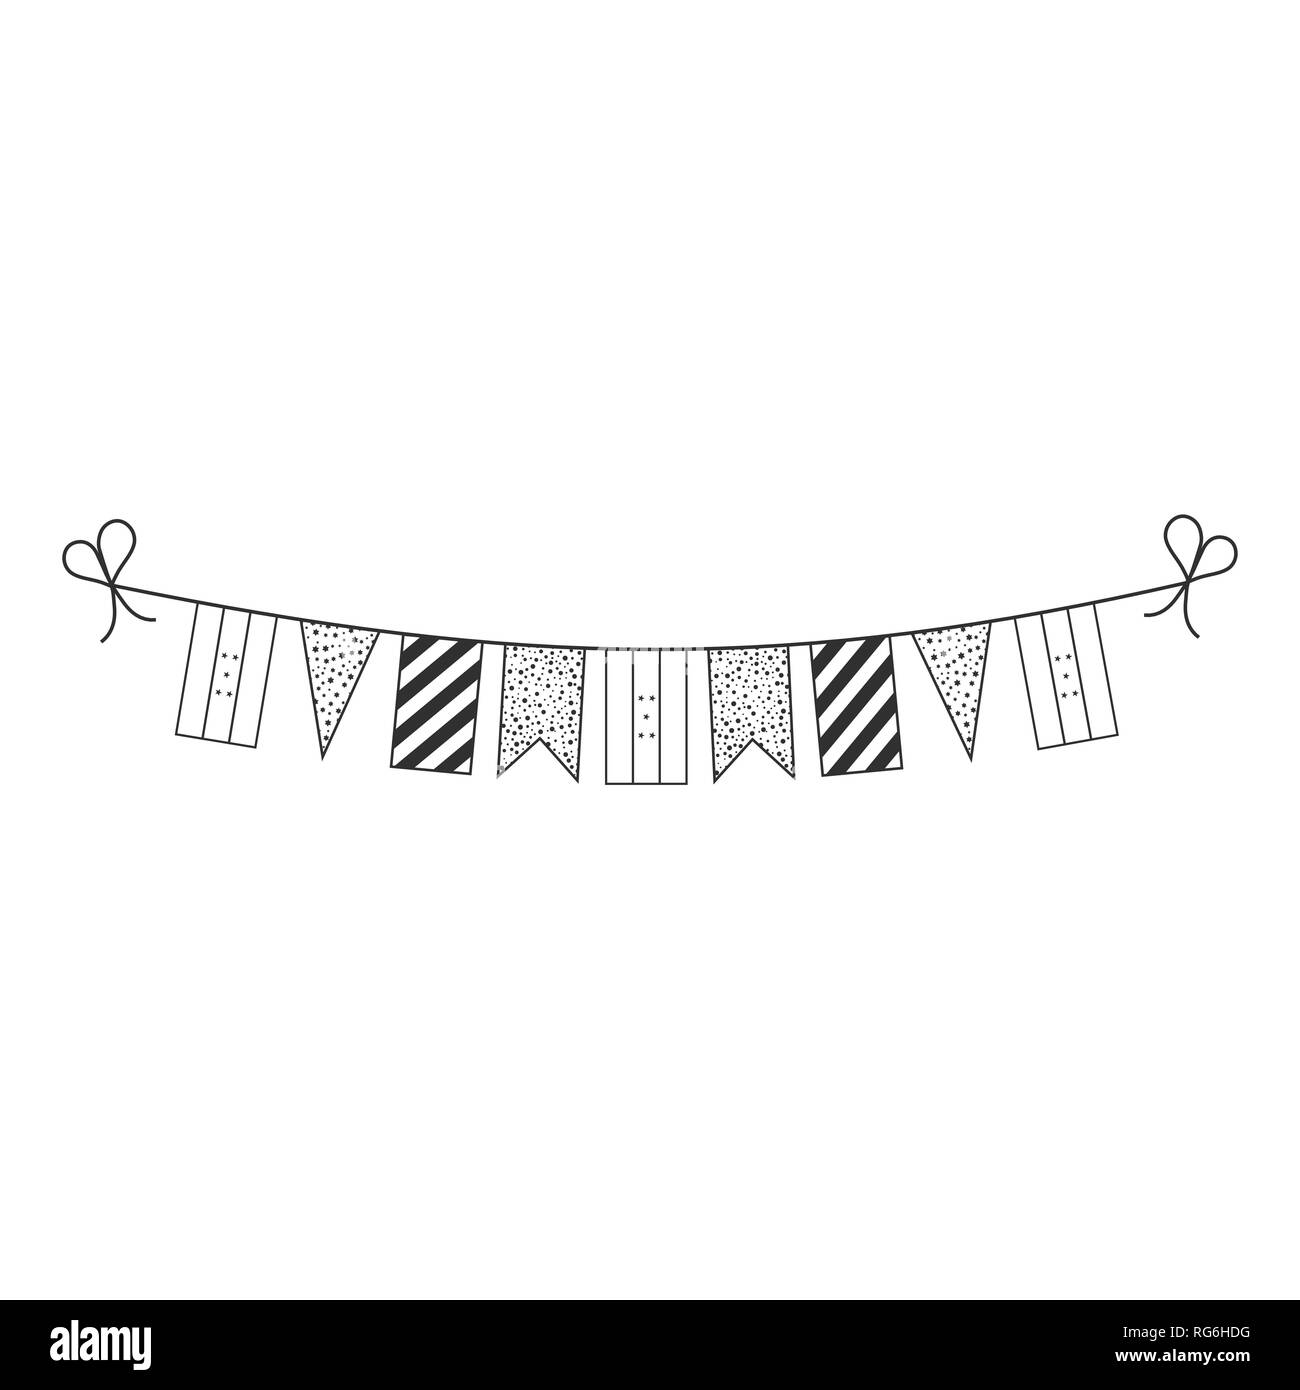 Decorations bunting flags for Honduras national day holiday in black outline flat design. Independence day or National day holiday concept. Stock Vector